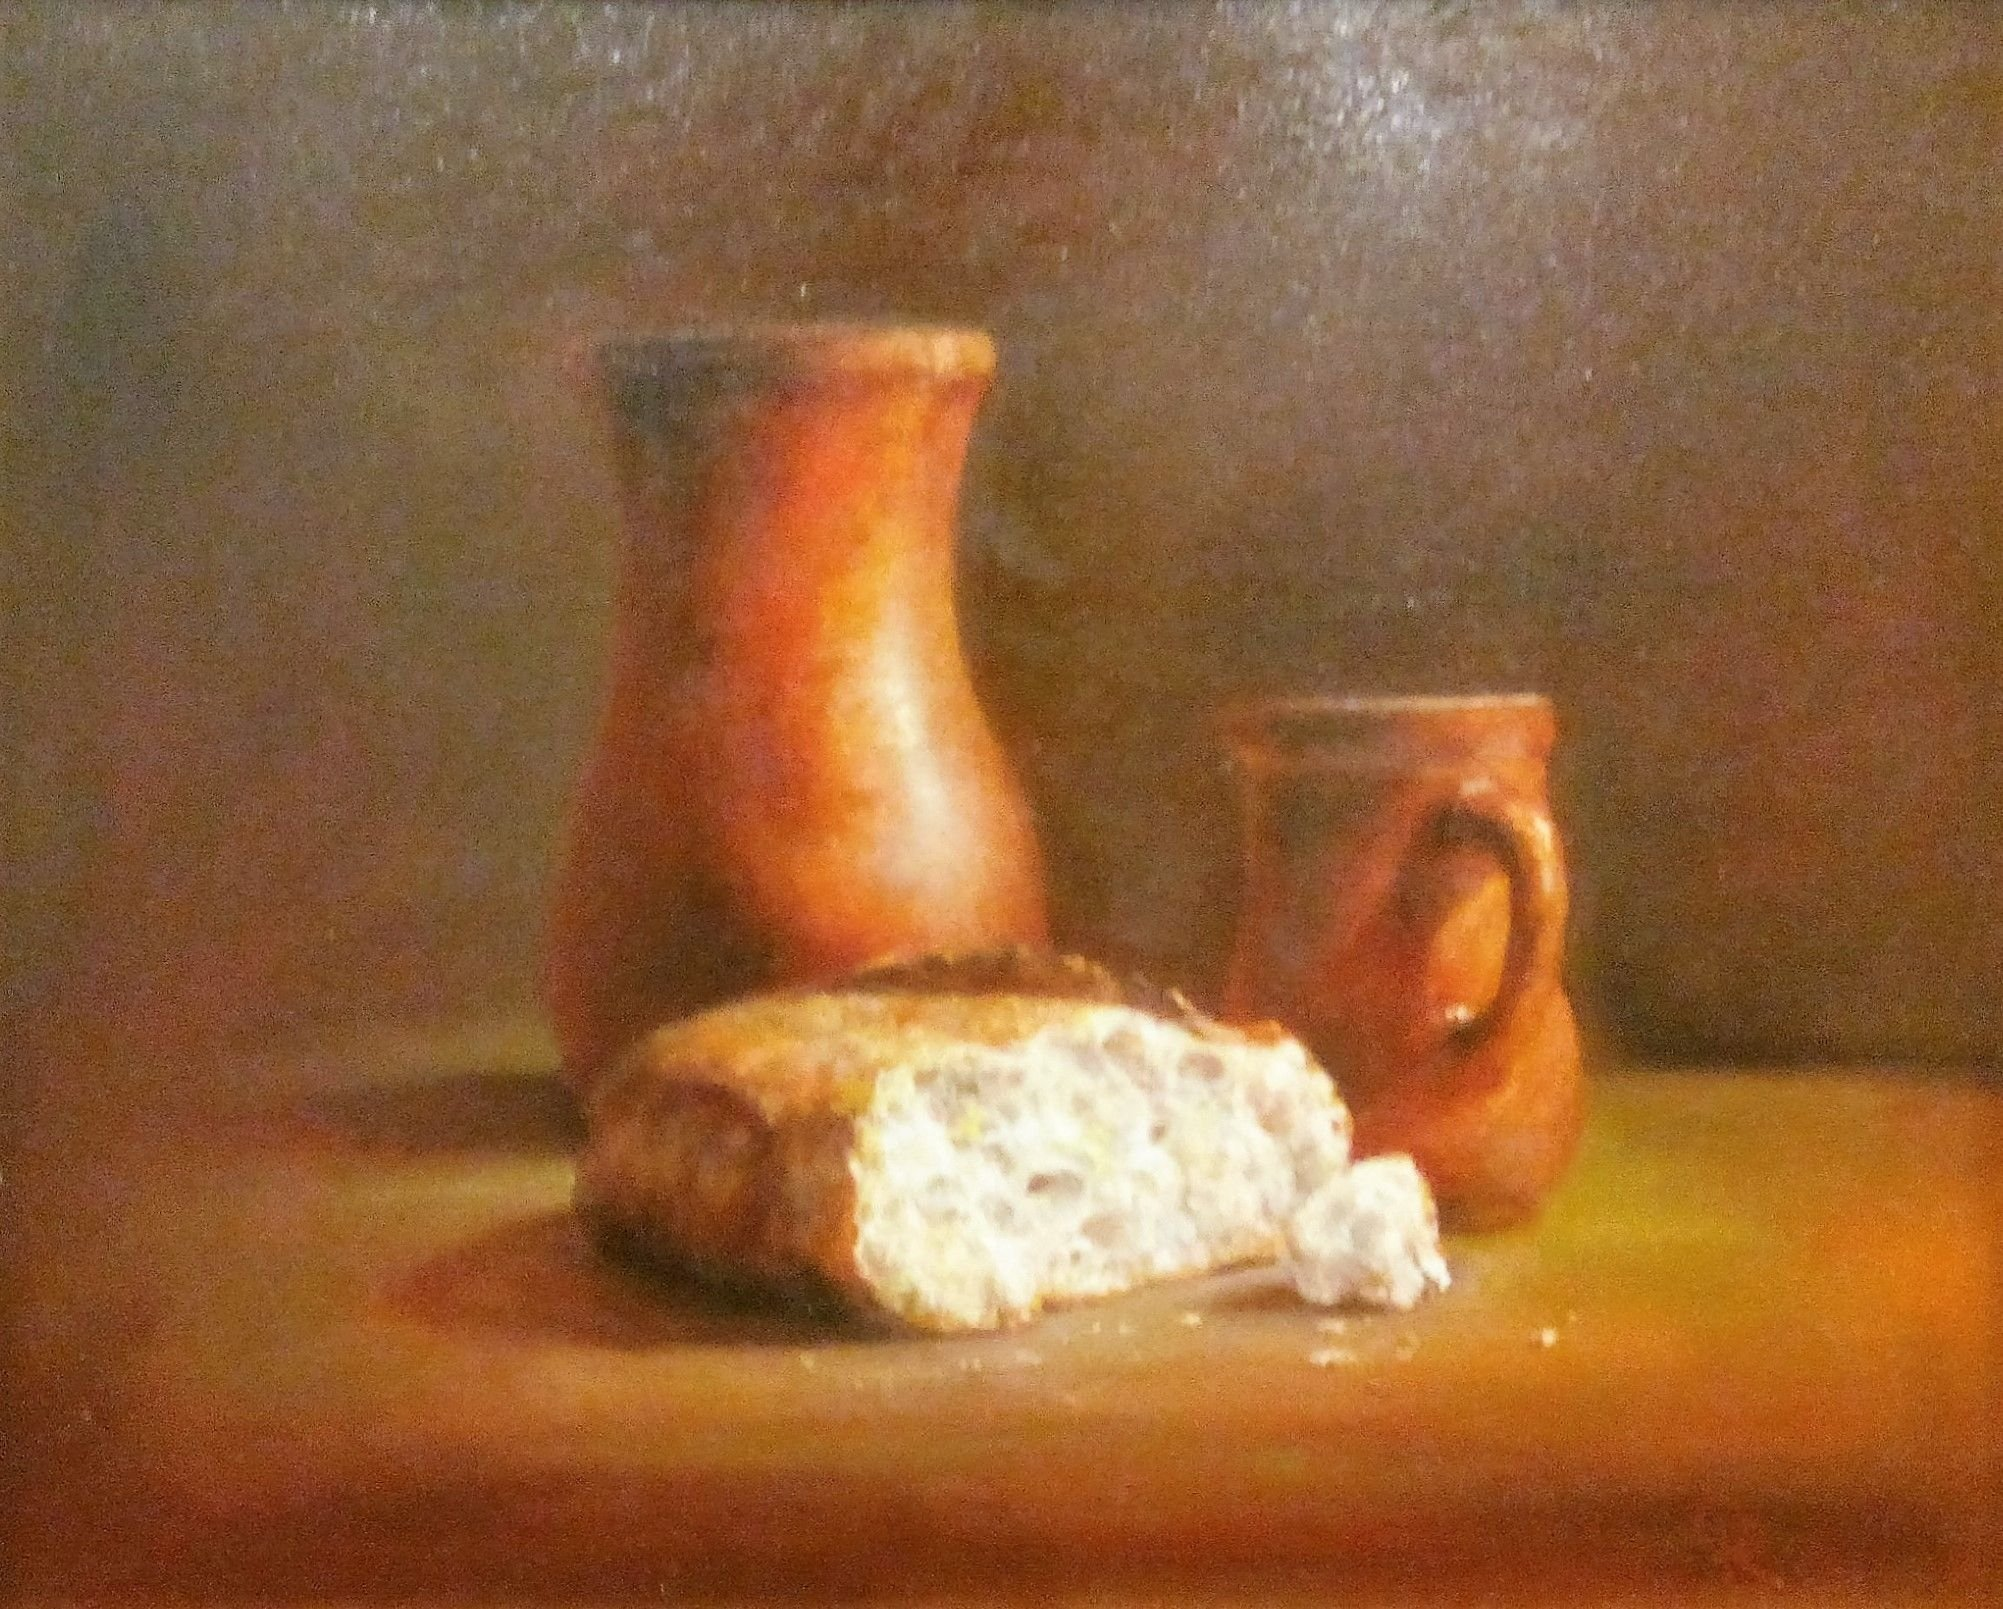 Bread and two jugs